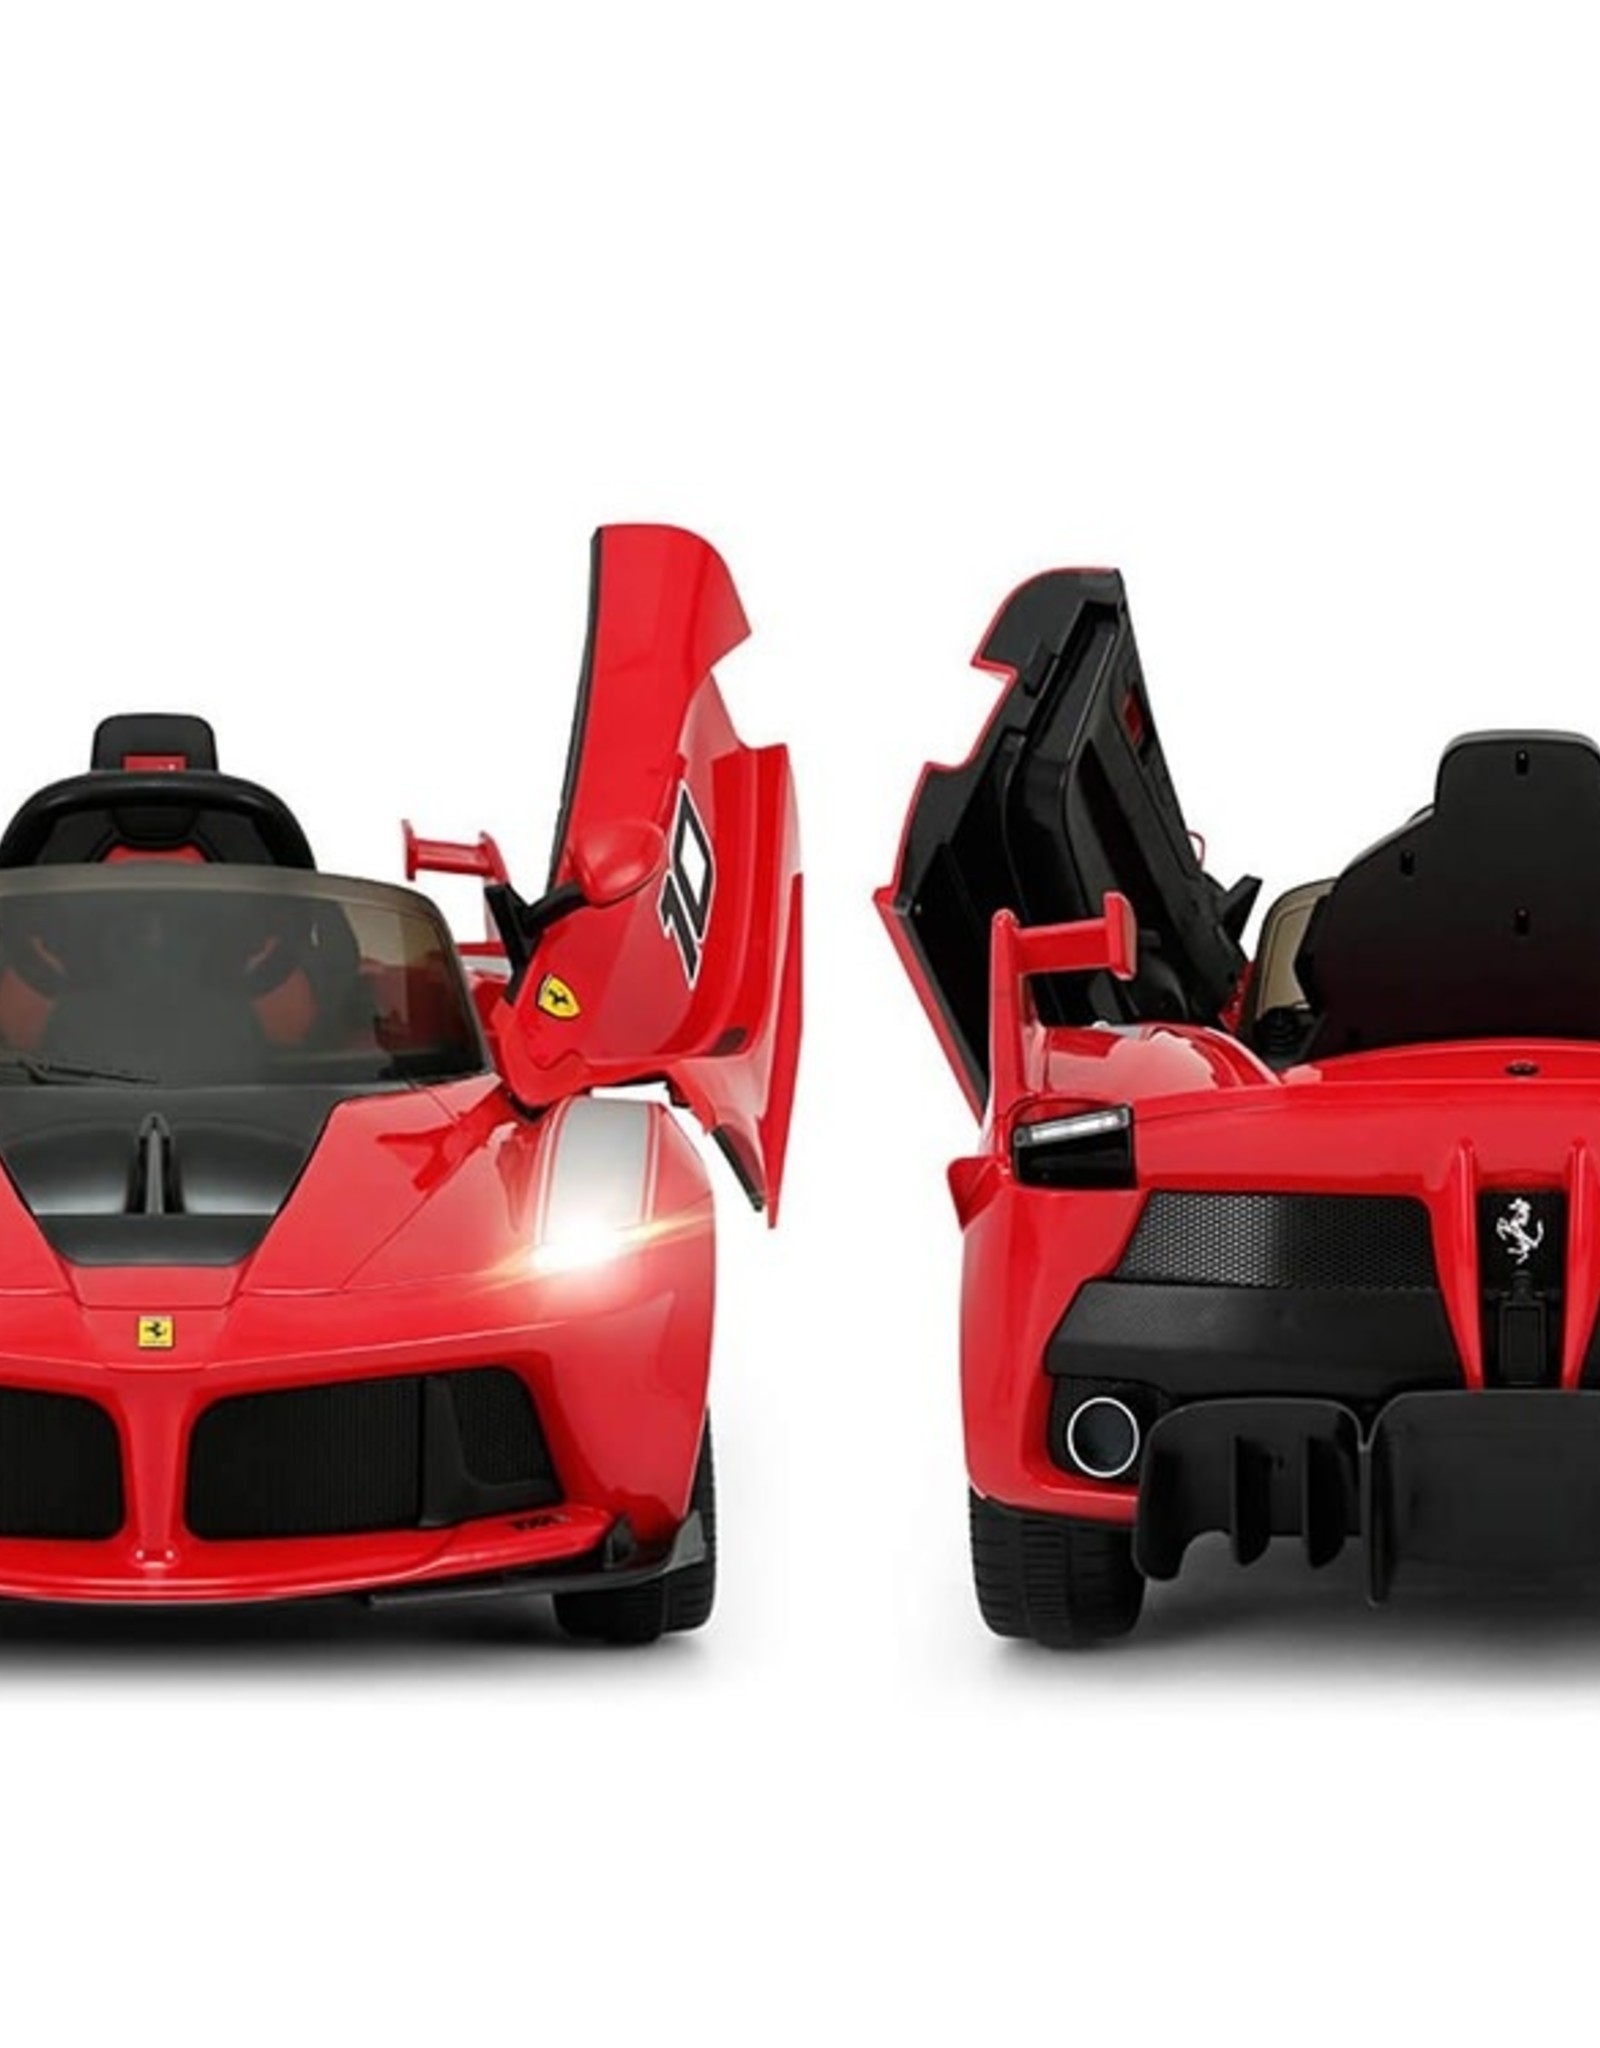 Rastar 12V Ferrari LaFerrari Kids Electric Ride On Car with MP3 and Remote Control - Red